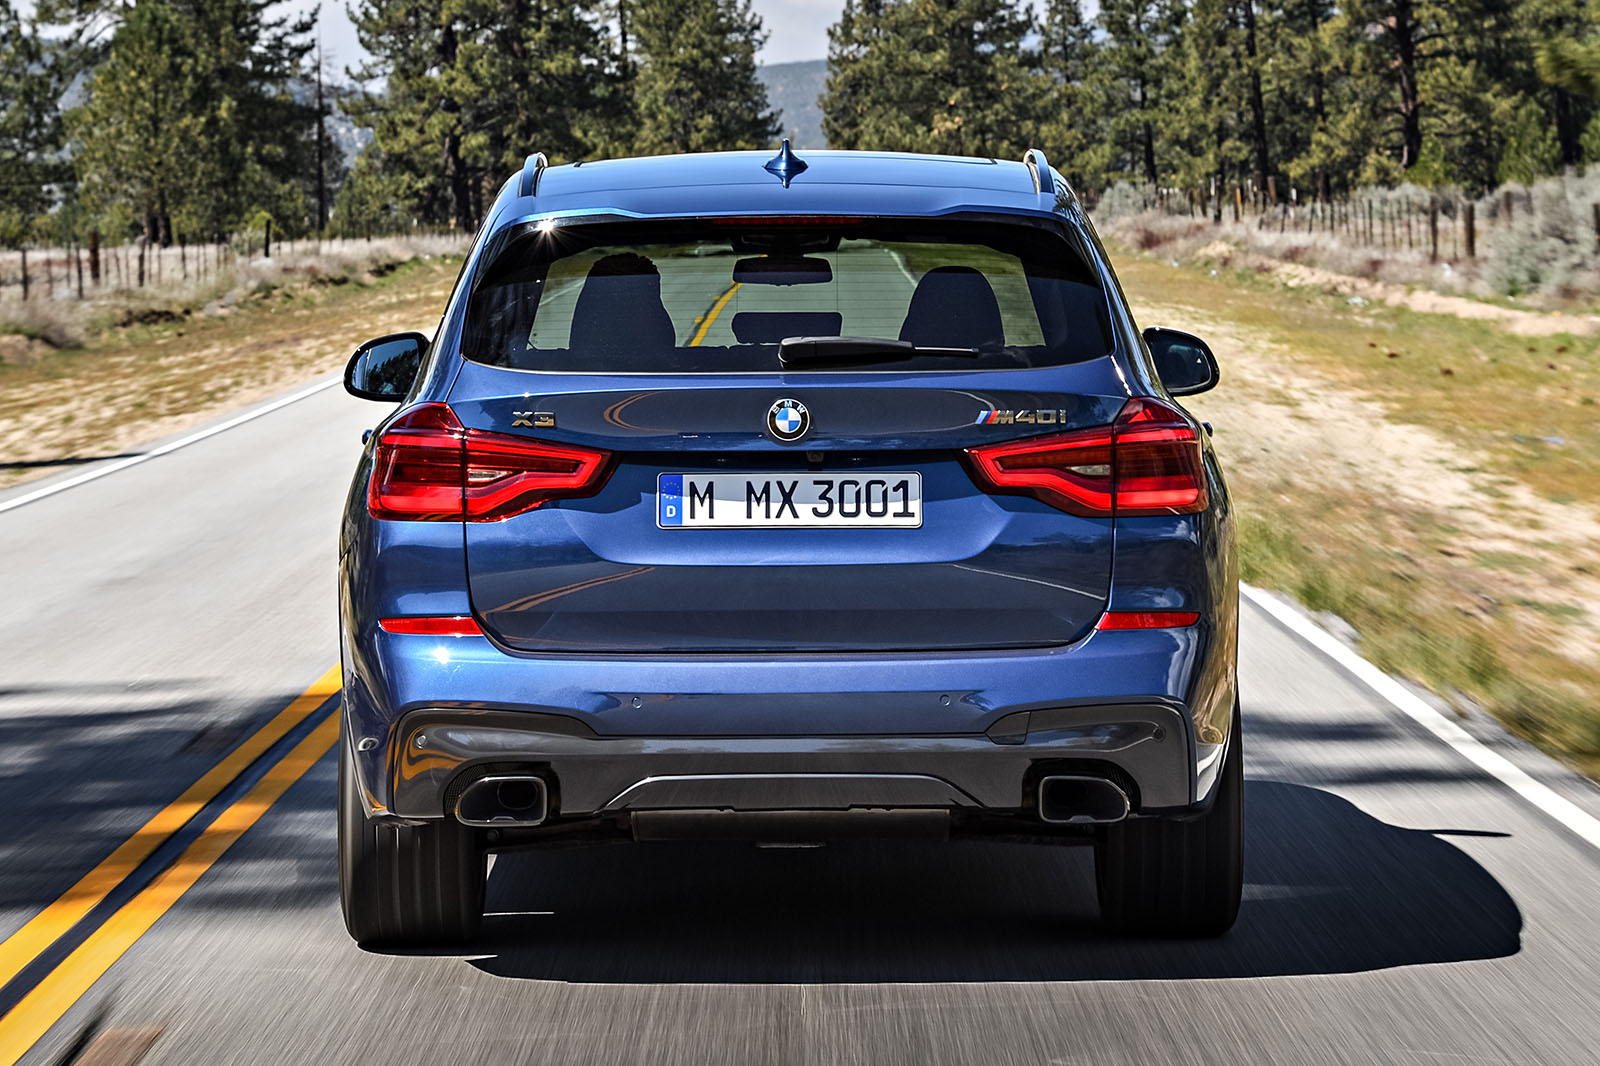 2017 bmw x3 revealed with hot m40i rival to audi sq5 autocar. Black Bedroom Furniture Sets. Home Design Ideas